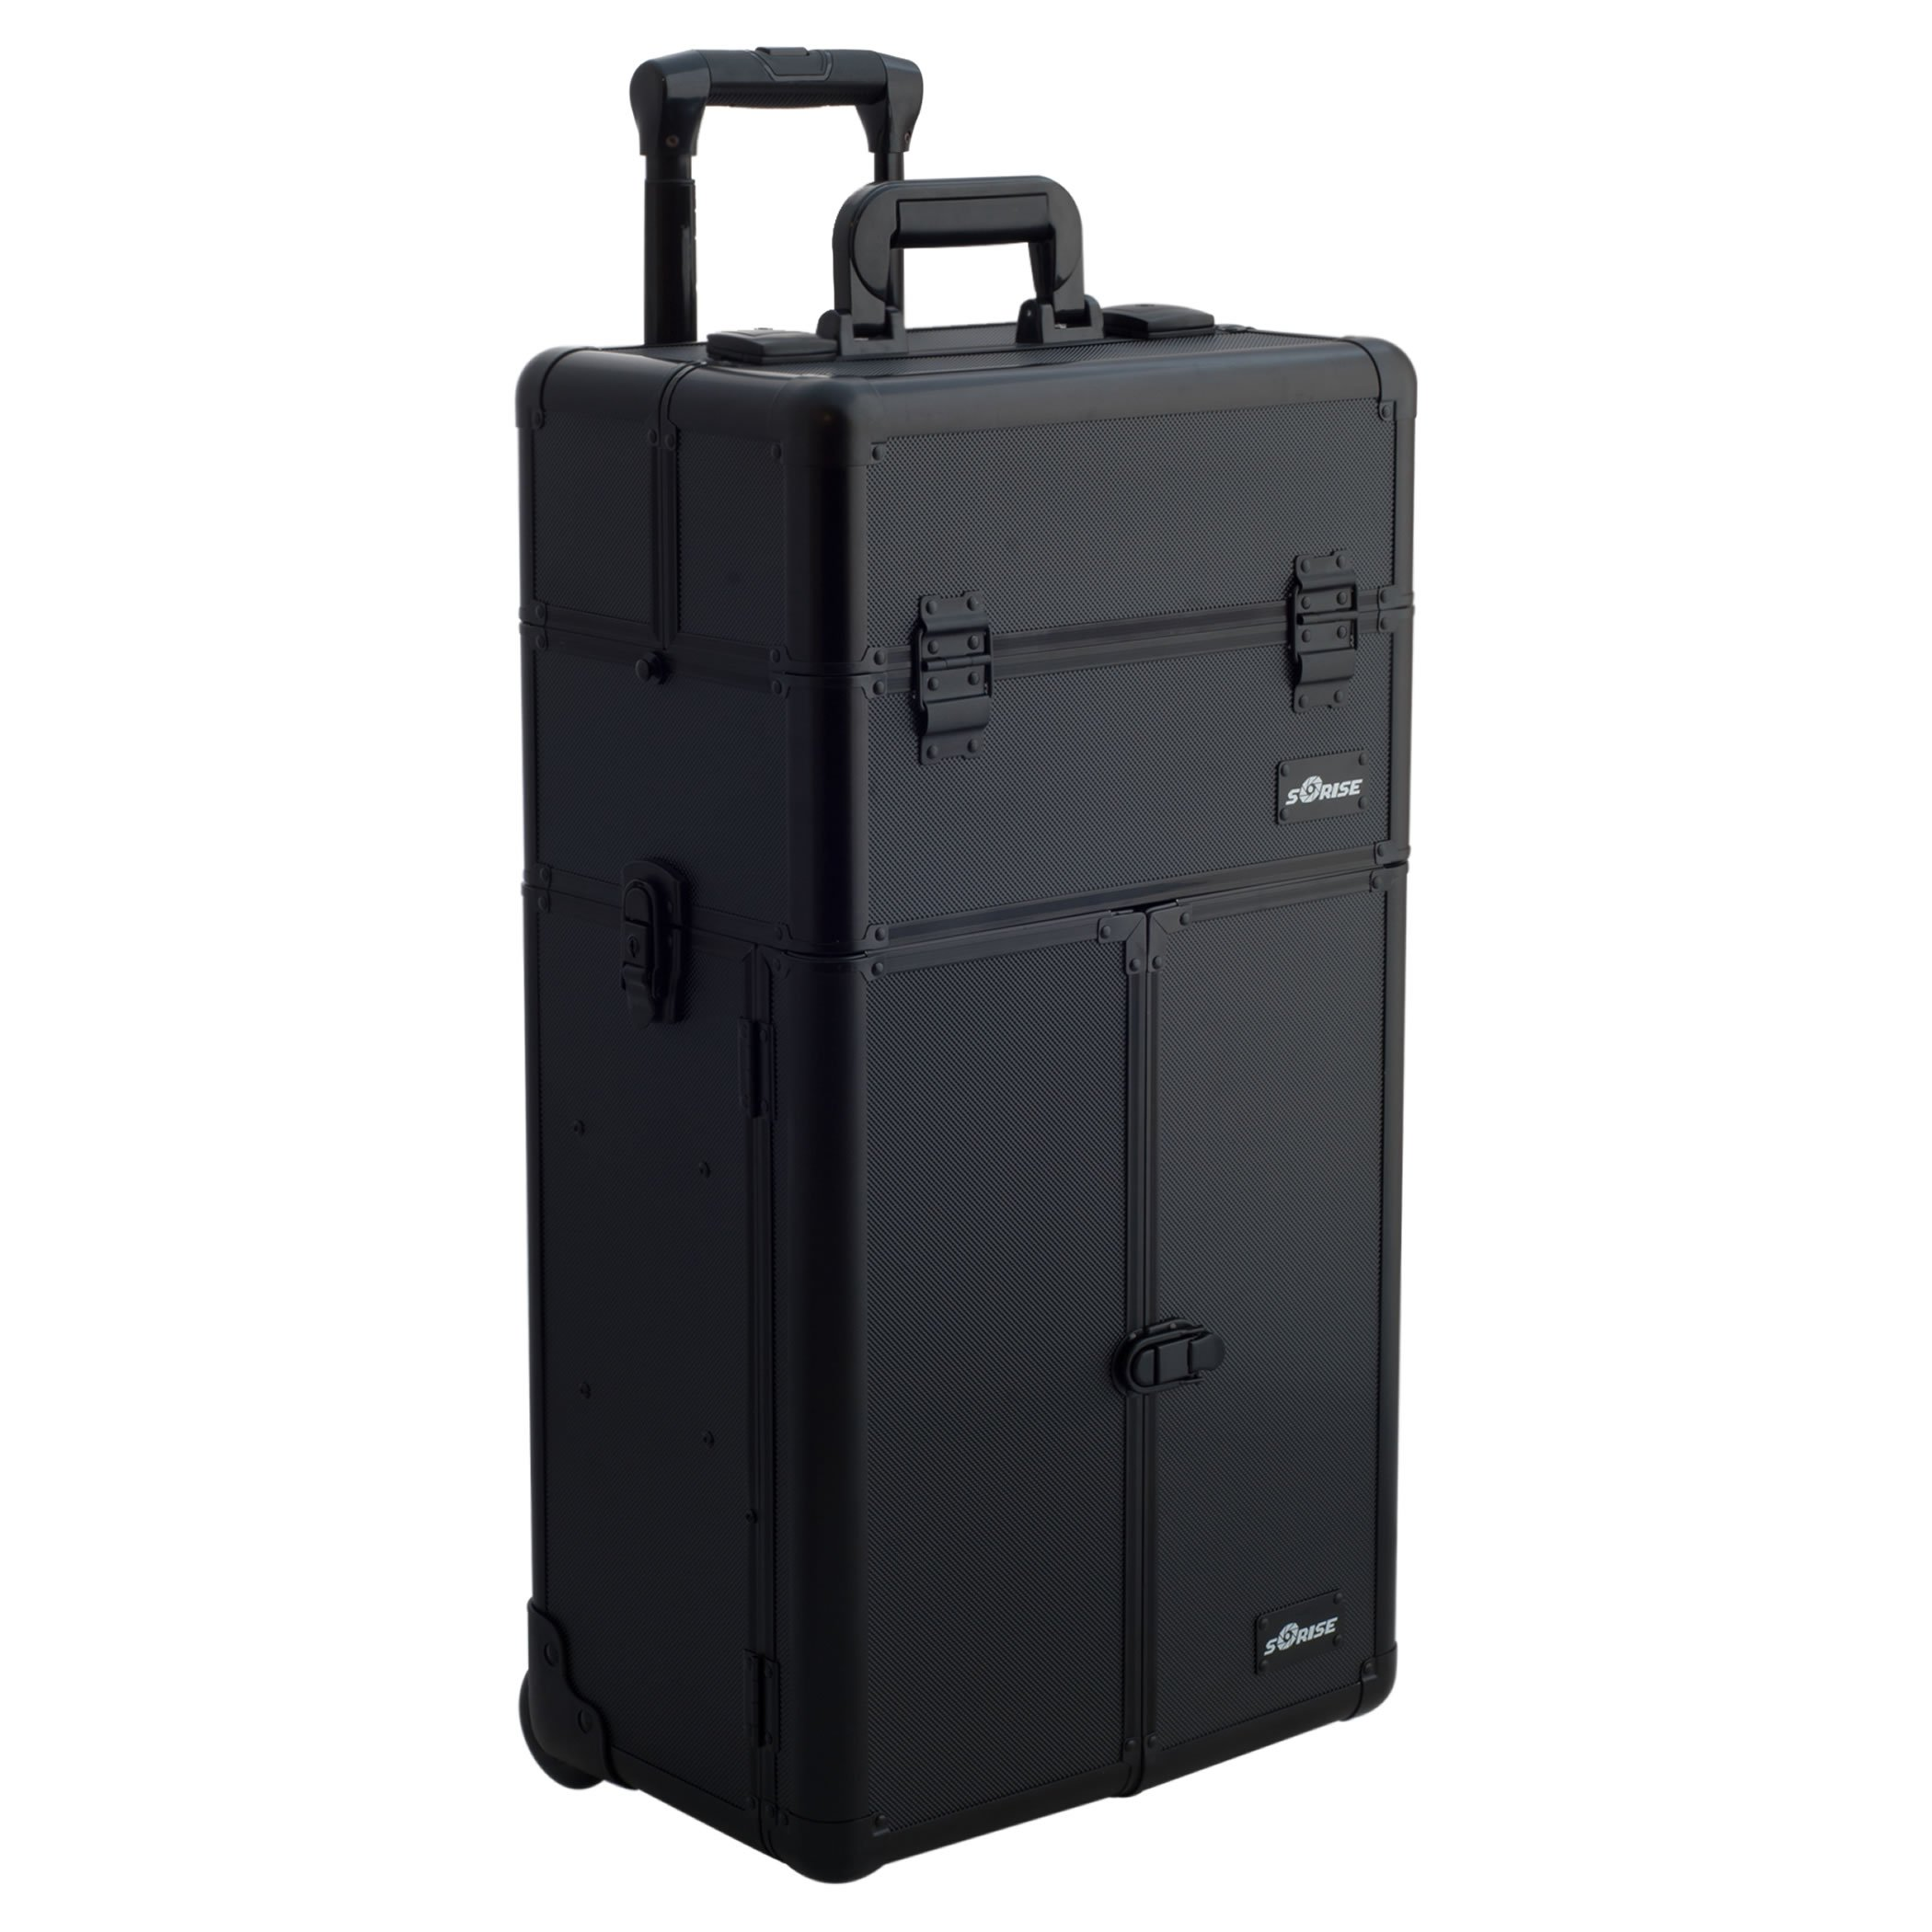 SUNRISE Makeup Case on Wheels 2 in 1 Professional Artist I3165, French Doors, 4 Slide Trays and Drawers, Adjustable Dividers, Mirror with Shoulder Strap, Black Dot